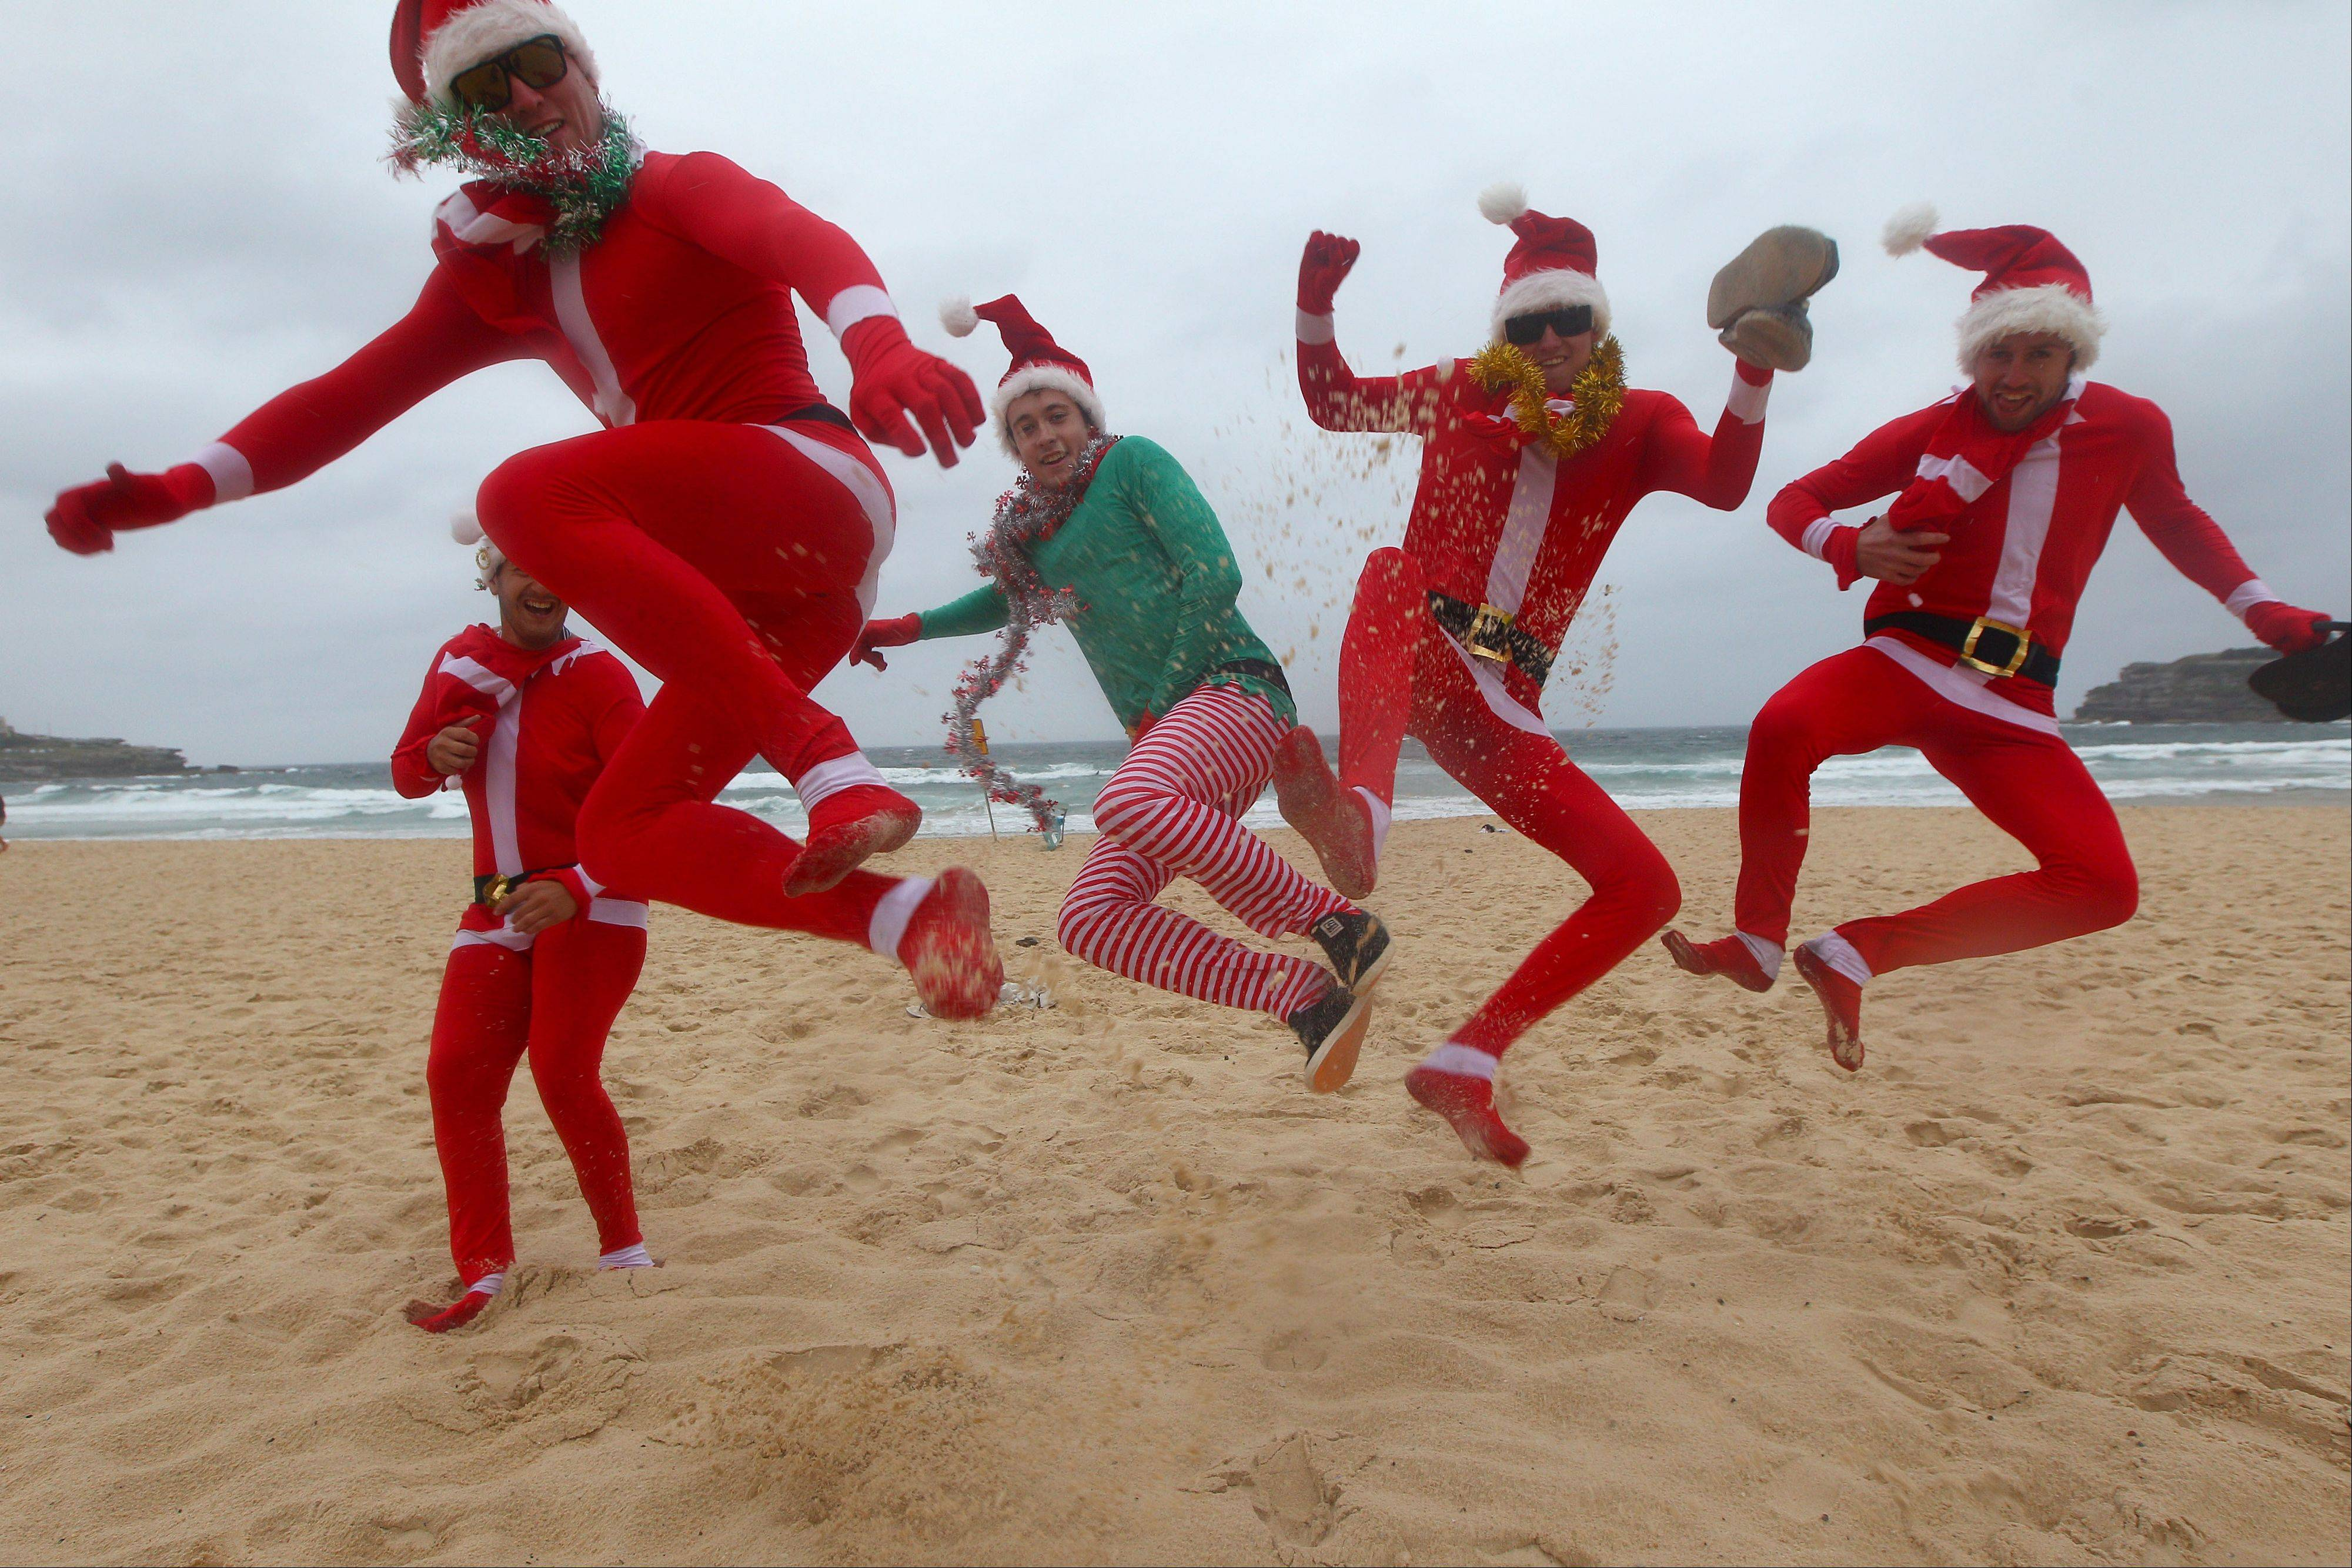 British travelers, left to right, Liam Skalley, John Arthurs, Ben Saunders, Sam Hope and Liam Fillingham kick up their heels as they celebrate Christmas Day despite wet and cold weather at Bondi Beach in Sydney, Australia, Tuesday, Dec. 25, 2012. (AP Photo/Rick Rycroft)